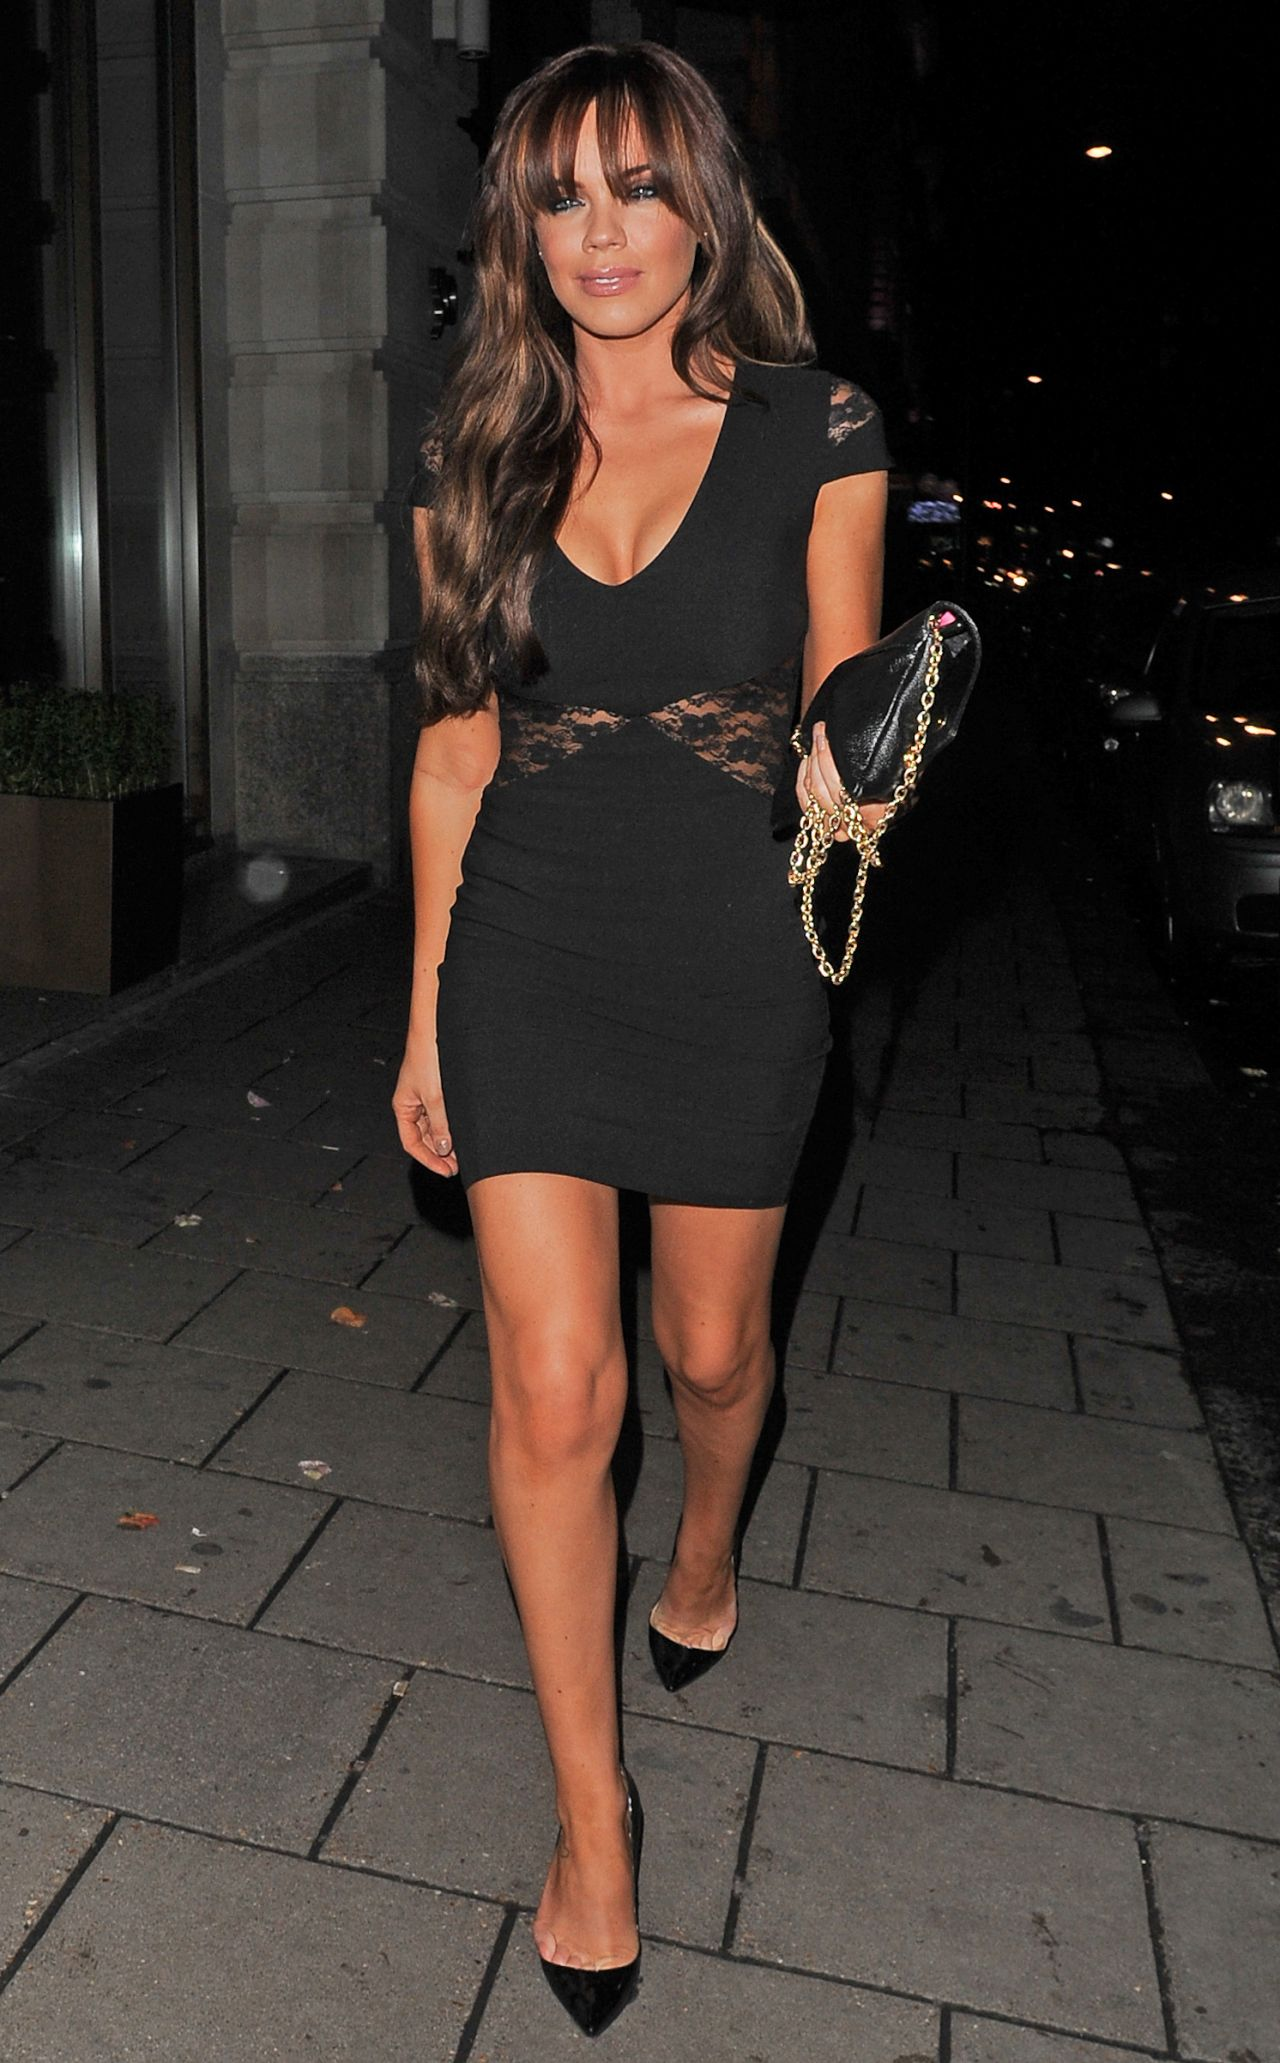 Maria Fowler Night Out Style - Leaving the Novikov Restaurant in London - Dec. 2013